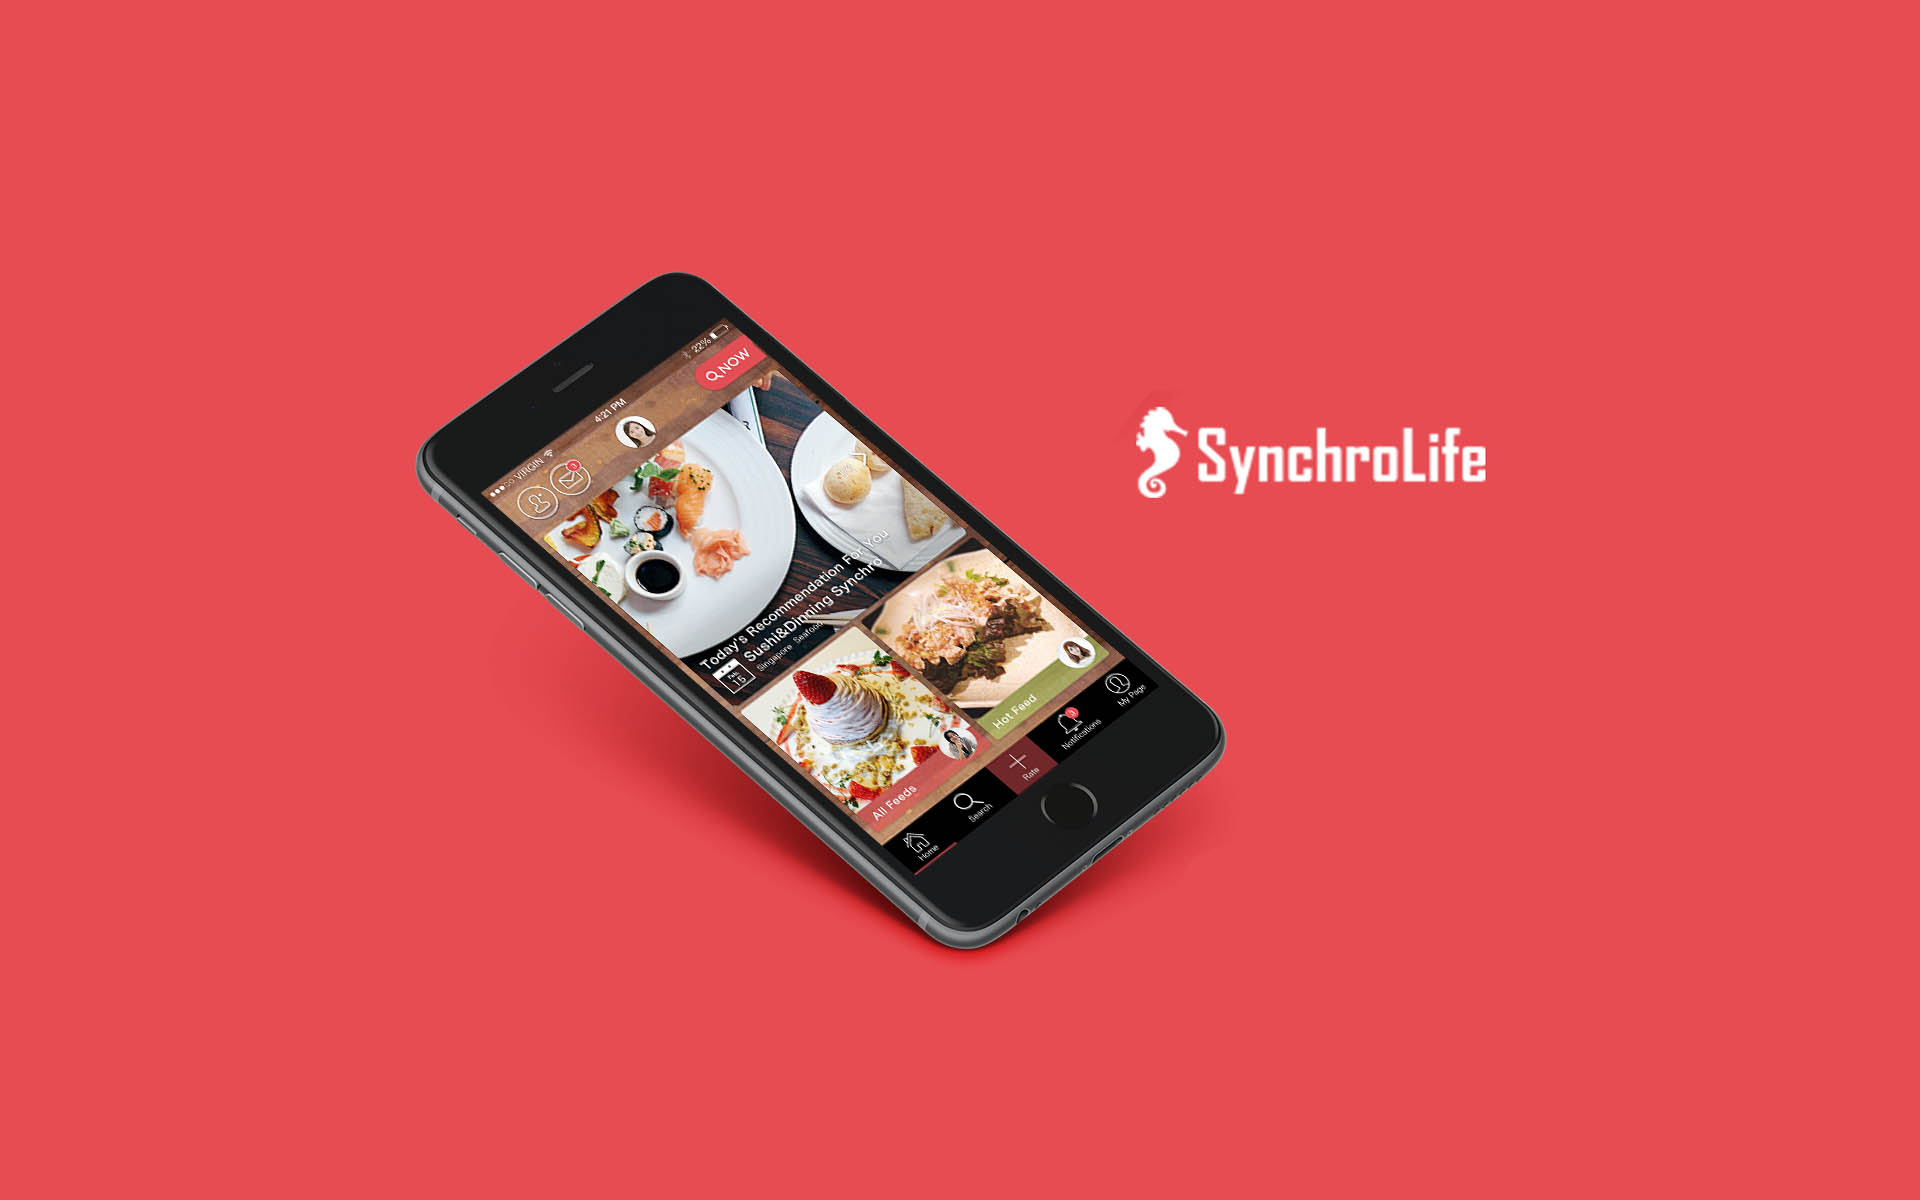 SynchroLife Announces Token Crowdsale to Develop the World's First Blockchain Based Decentralized Restaurant Recommendation Platform